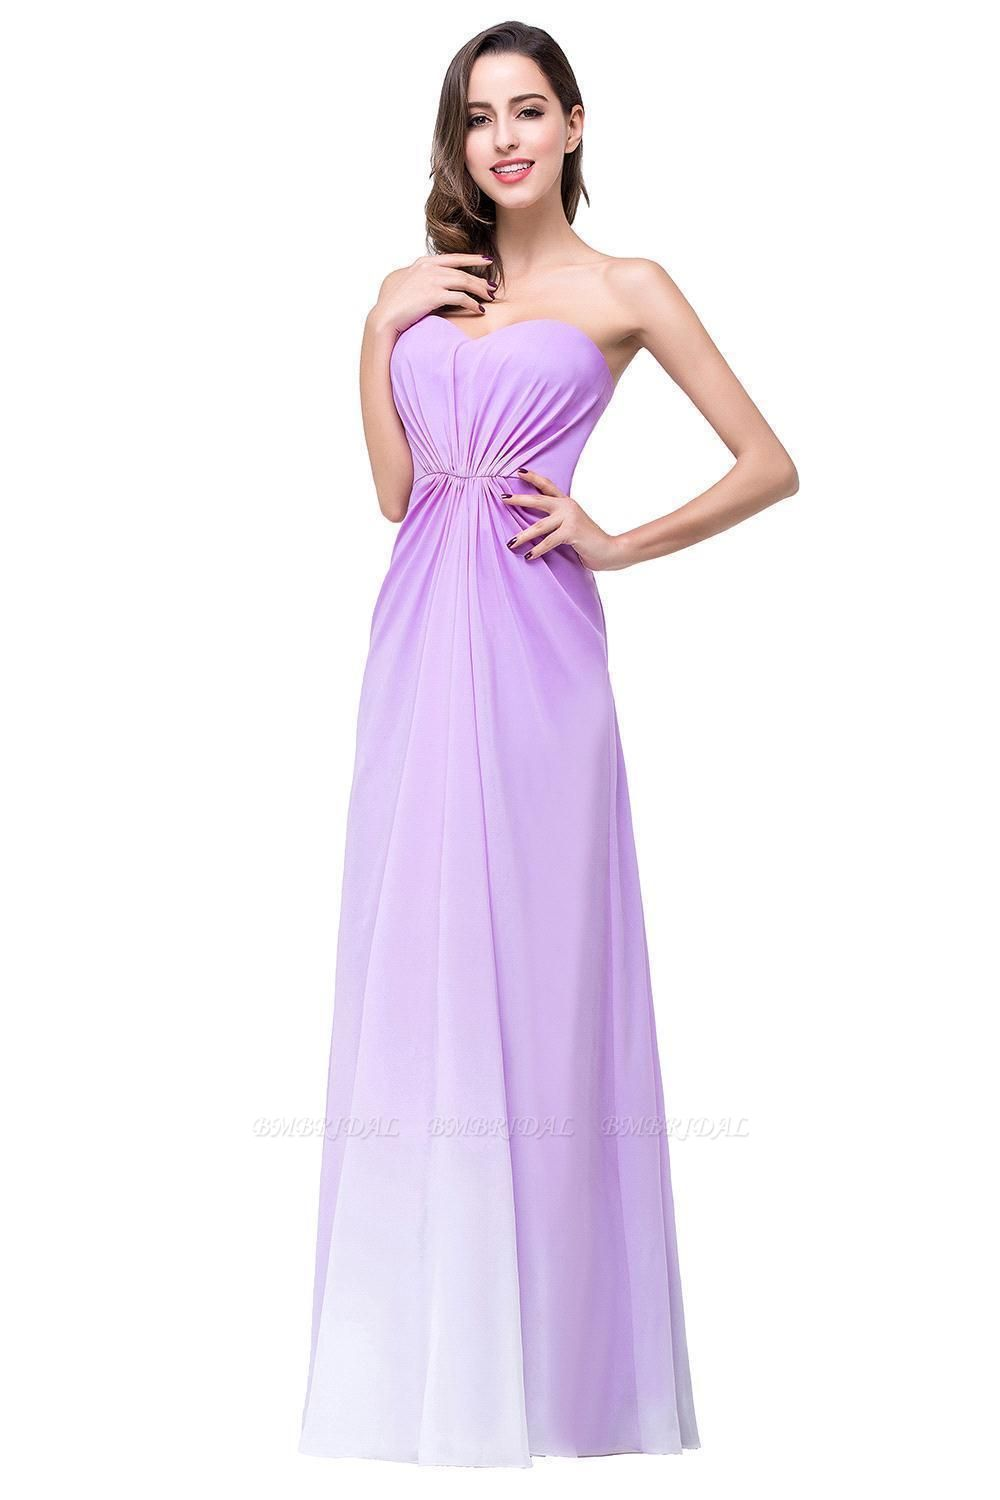 BMbridal Gorgeous A-line Strapless Lilac Chiffon Bridesmaid Dress Affordable In Stock